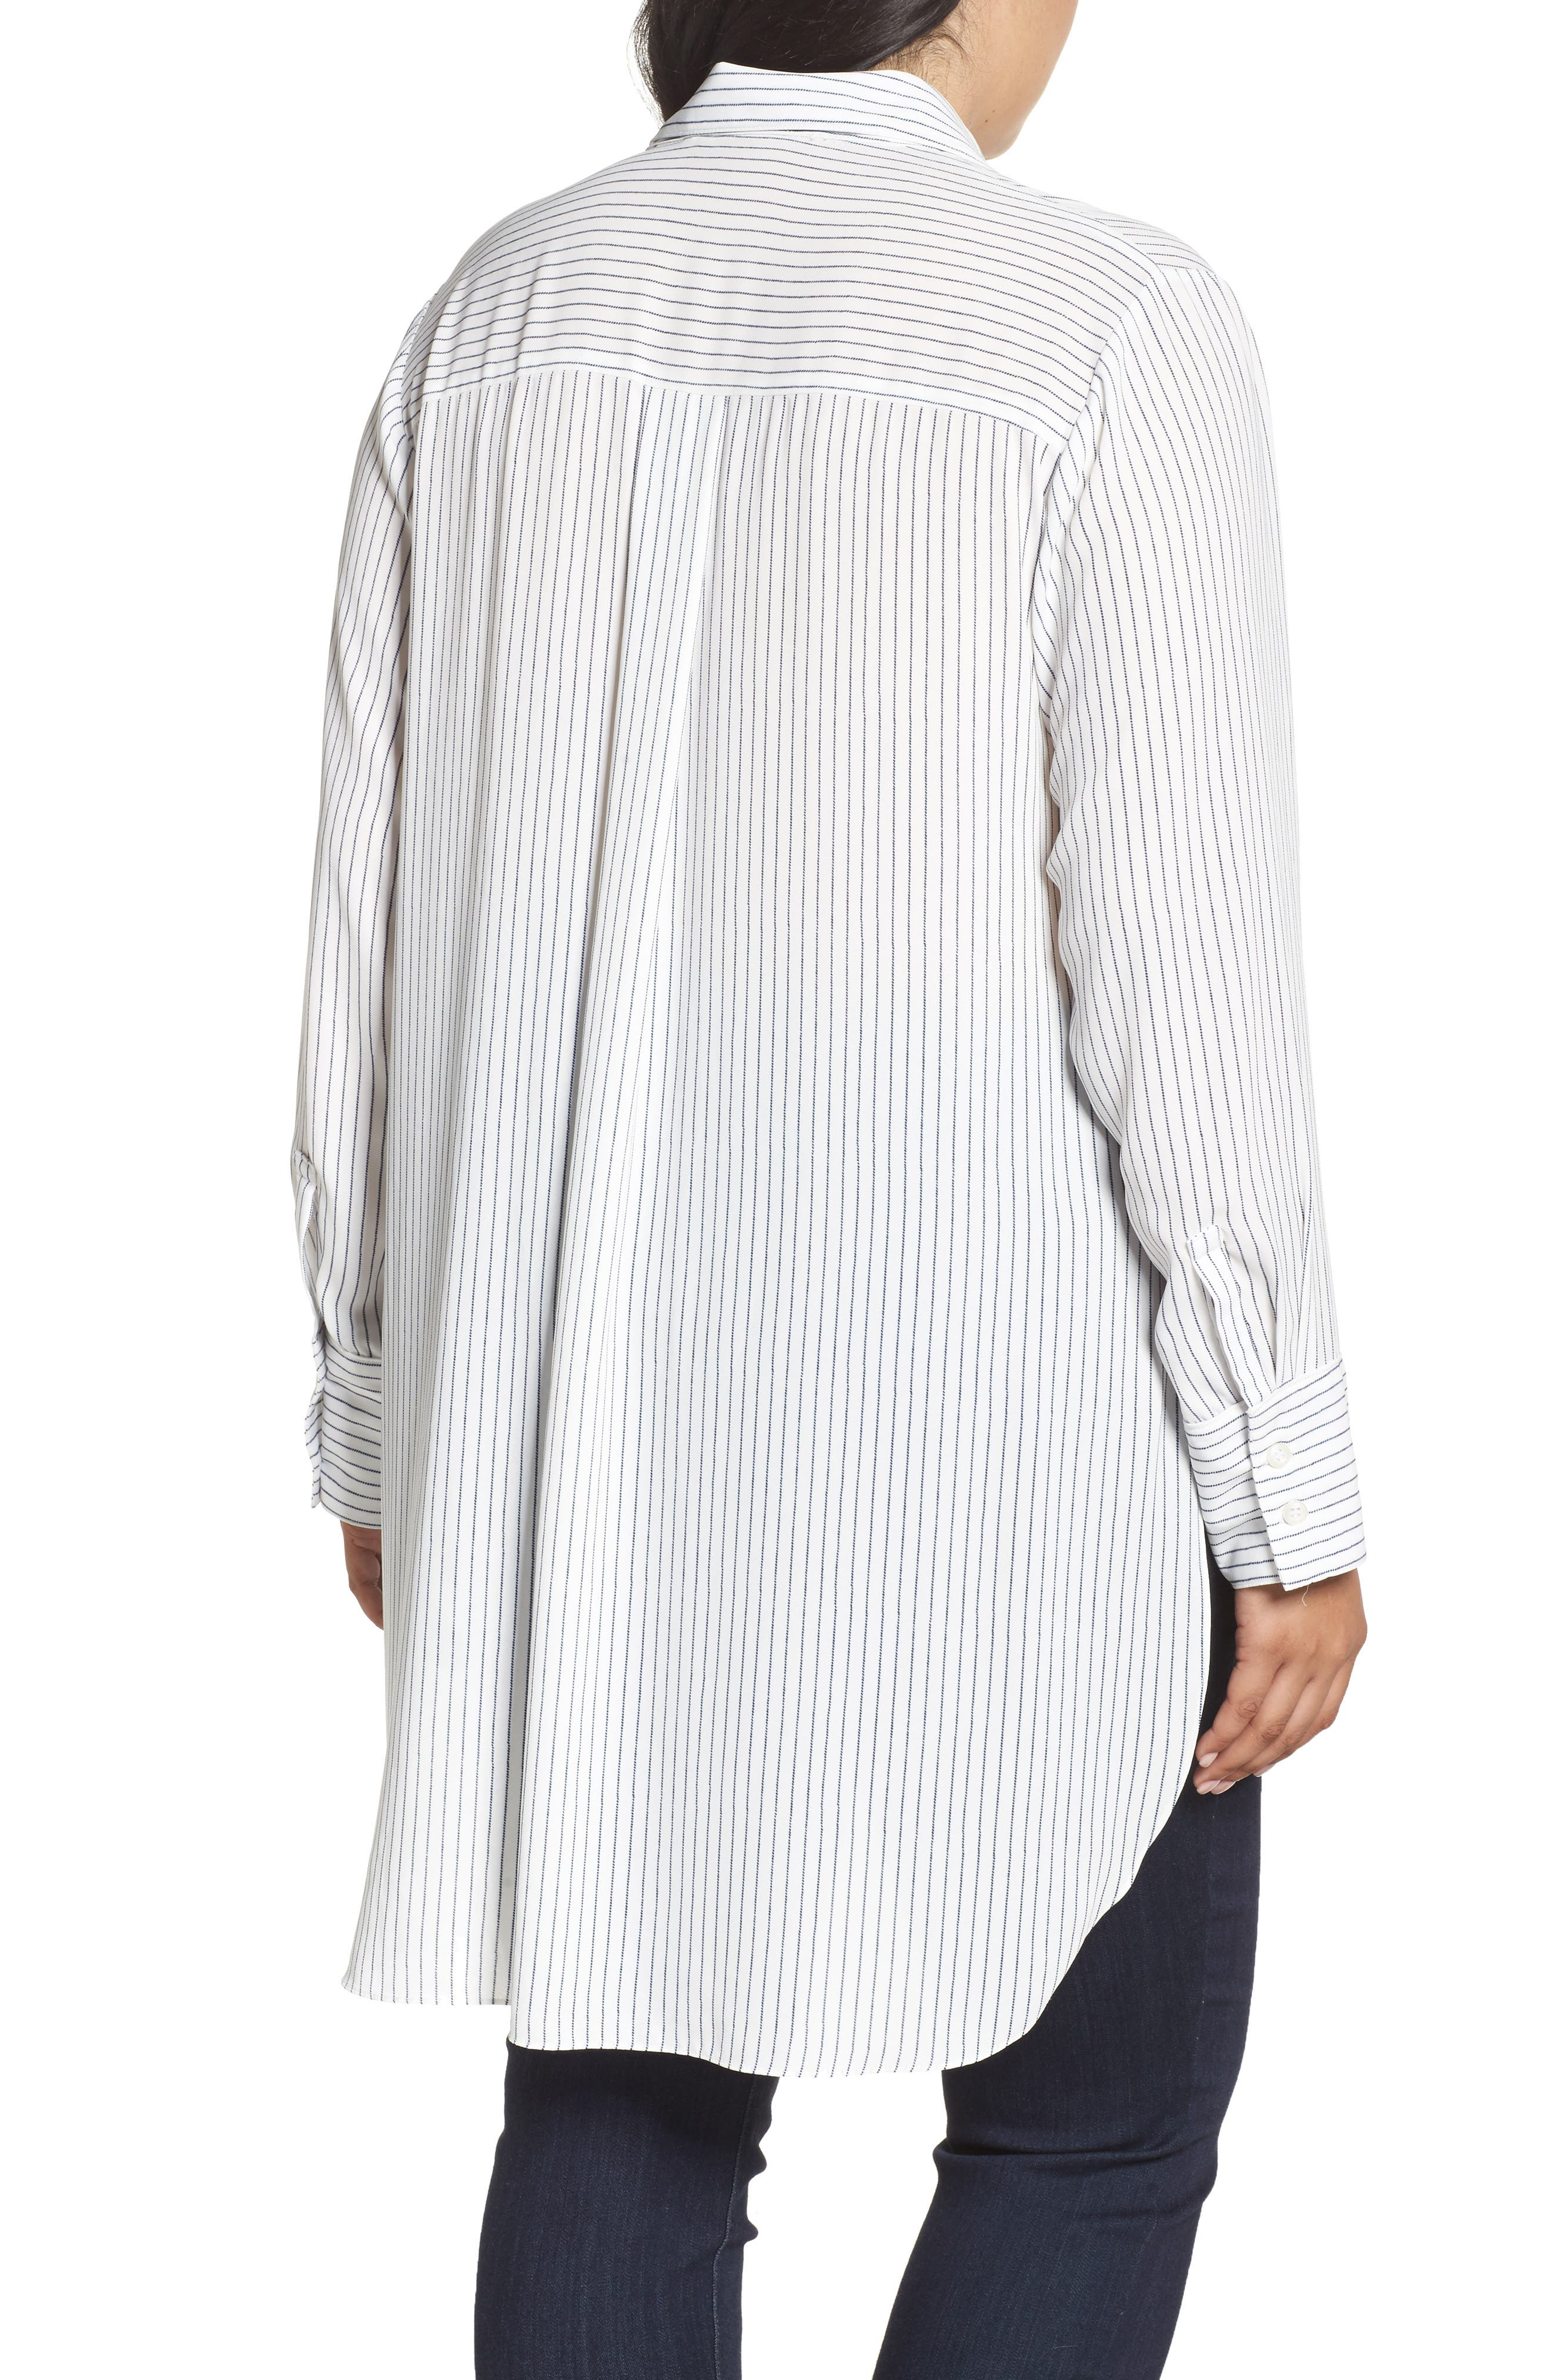 Alternate Image 2  - RACHEL Rachel Roy High/Low Pinstripe Shirt (Plus Size)